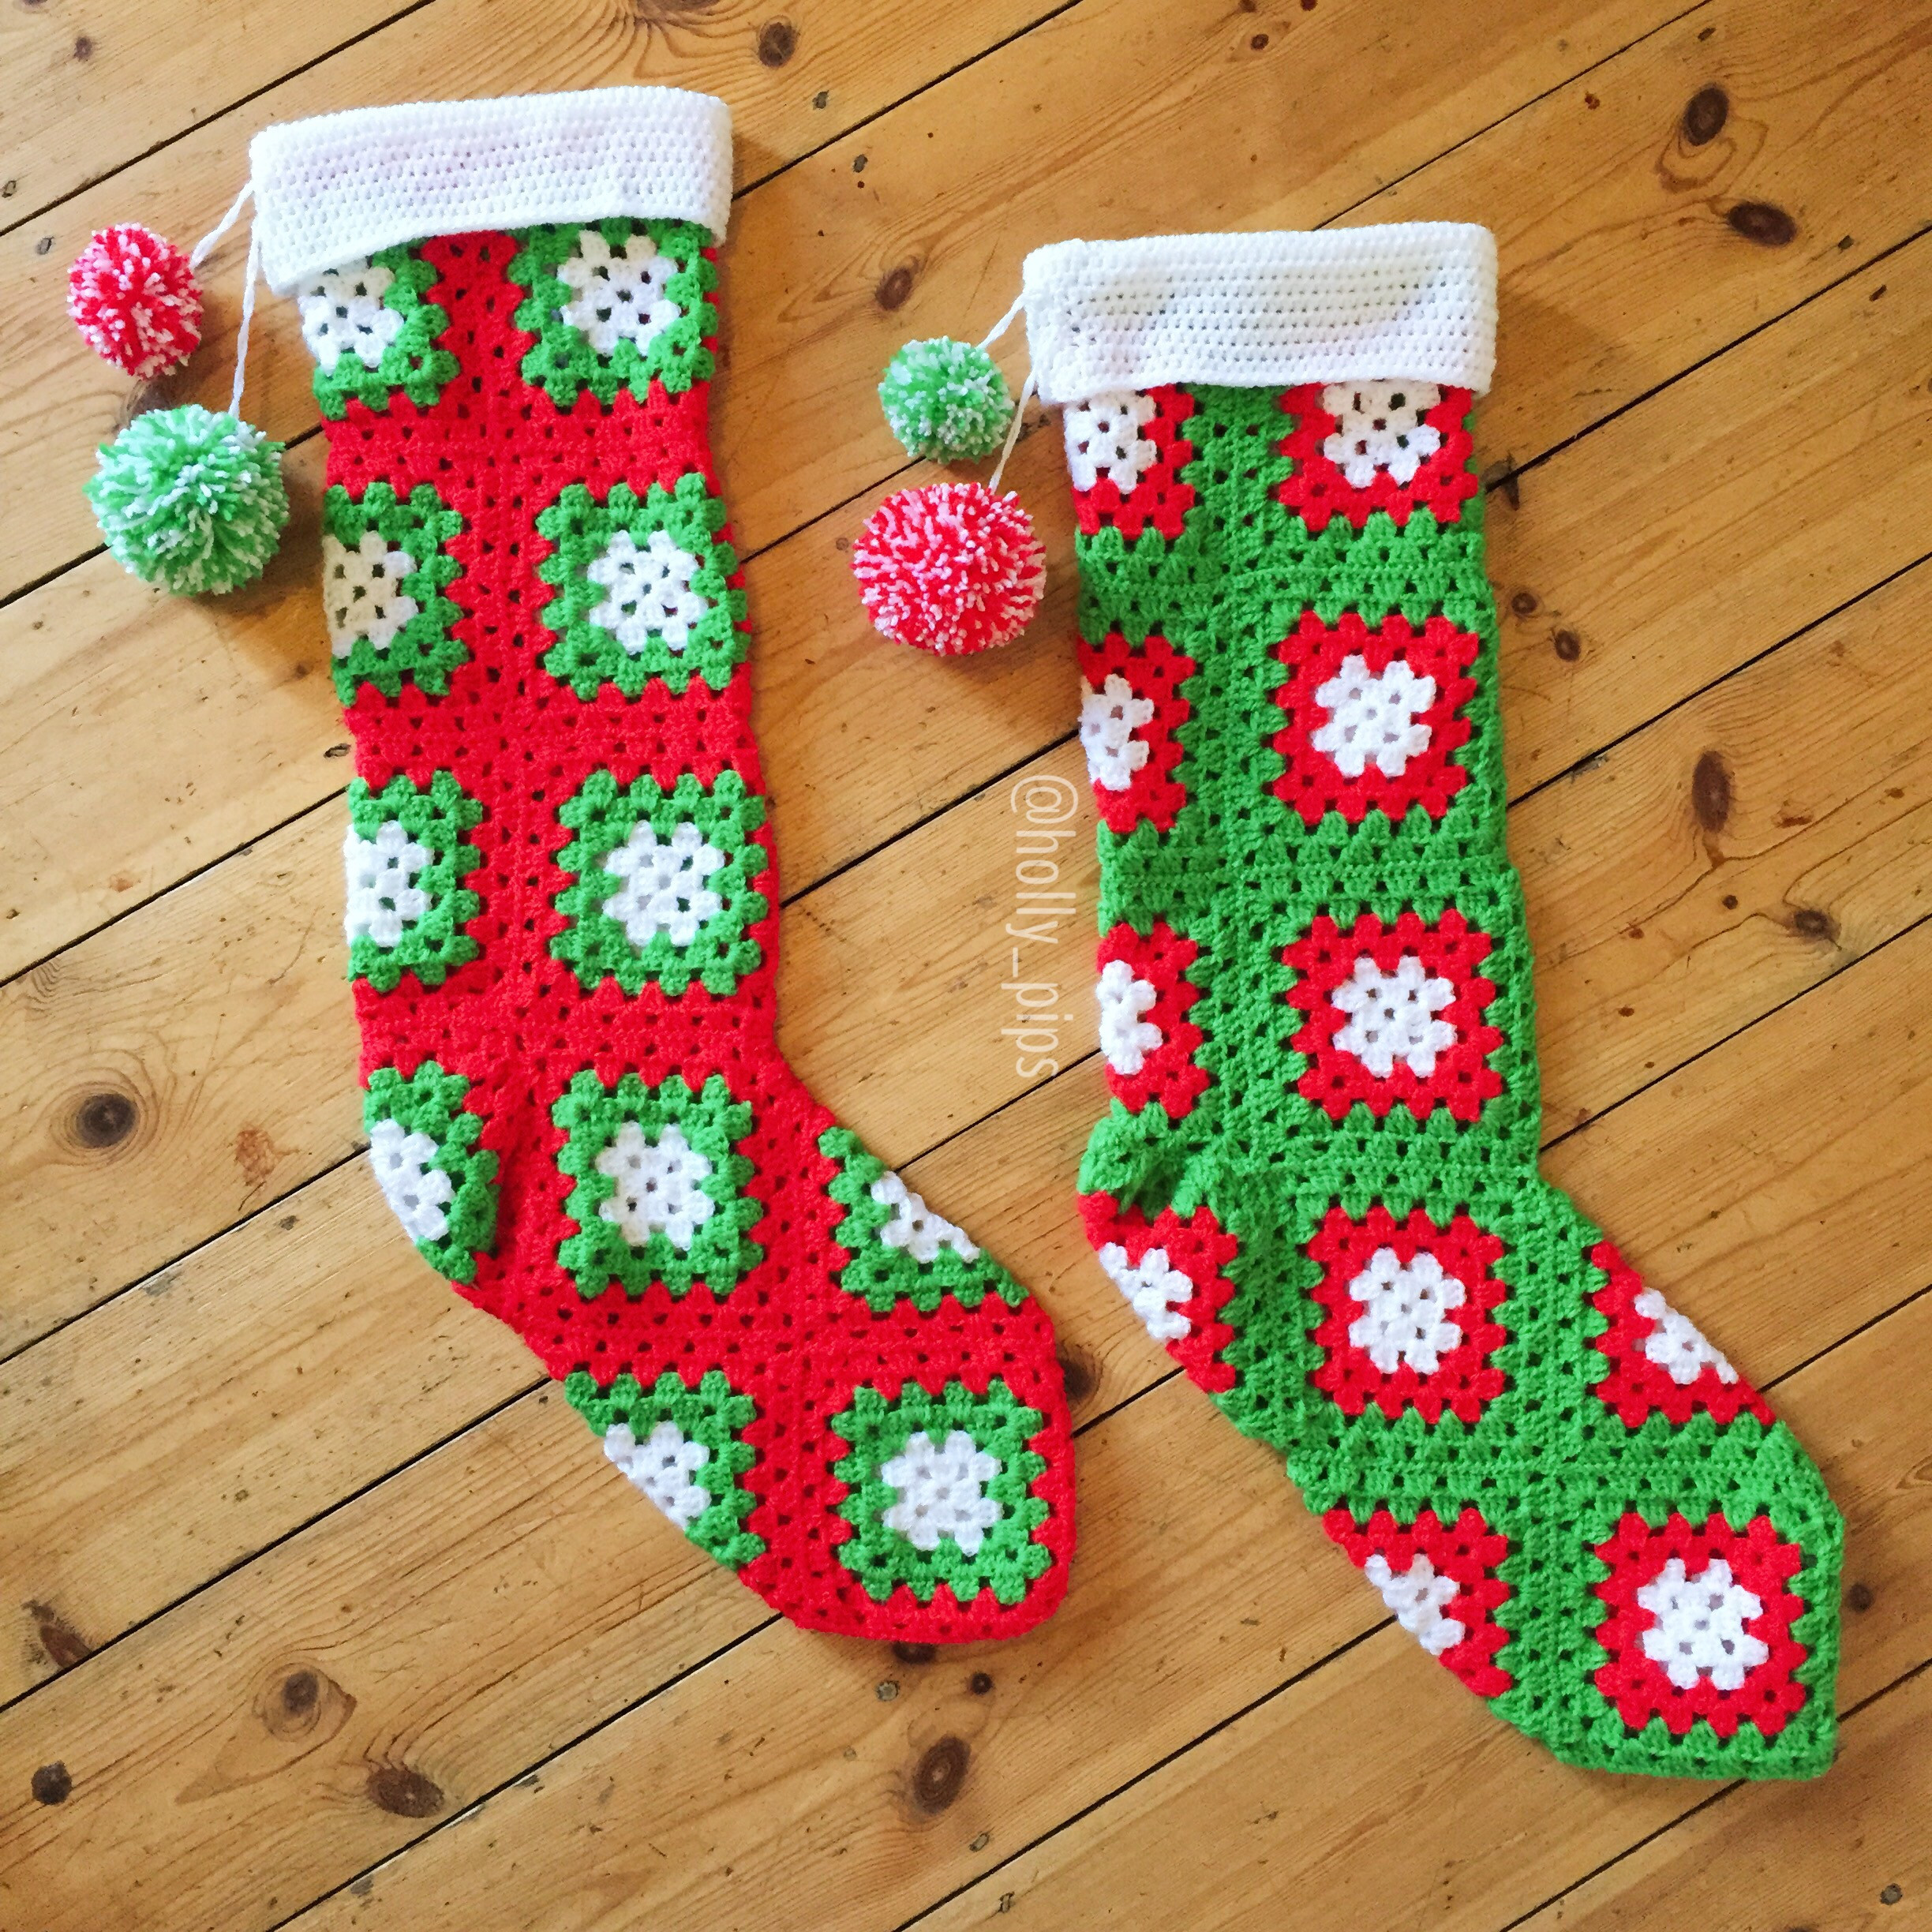 Awesome Crochet Christmas Stockings – Hollypips Crochet Christmas Stockings Of Contemporary 48 Pics Crochet Christmas Stockings